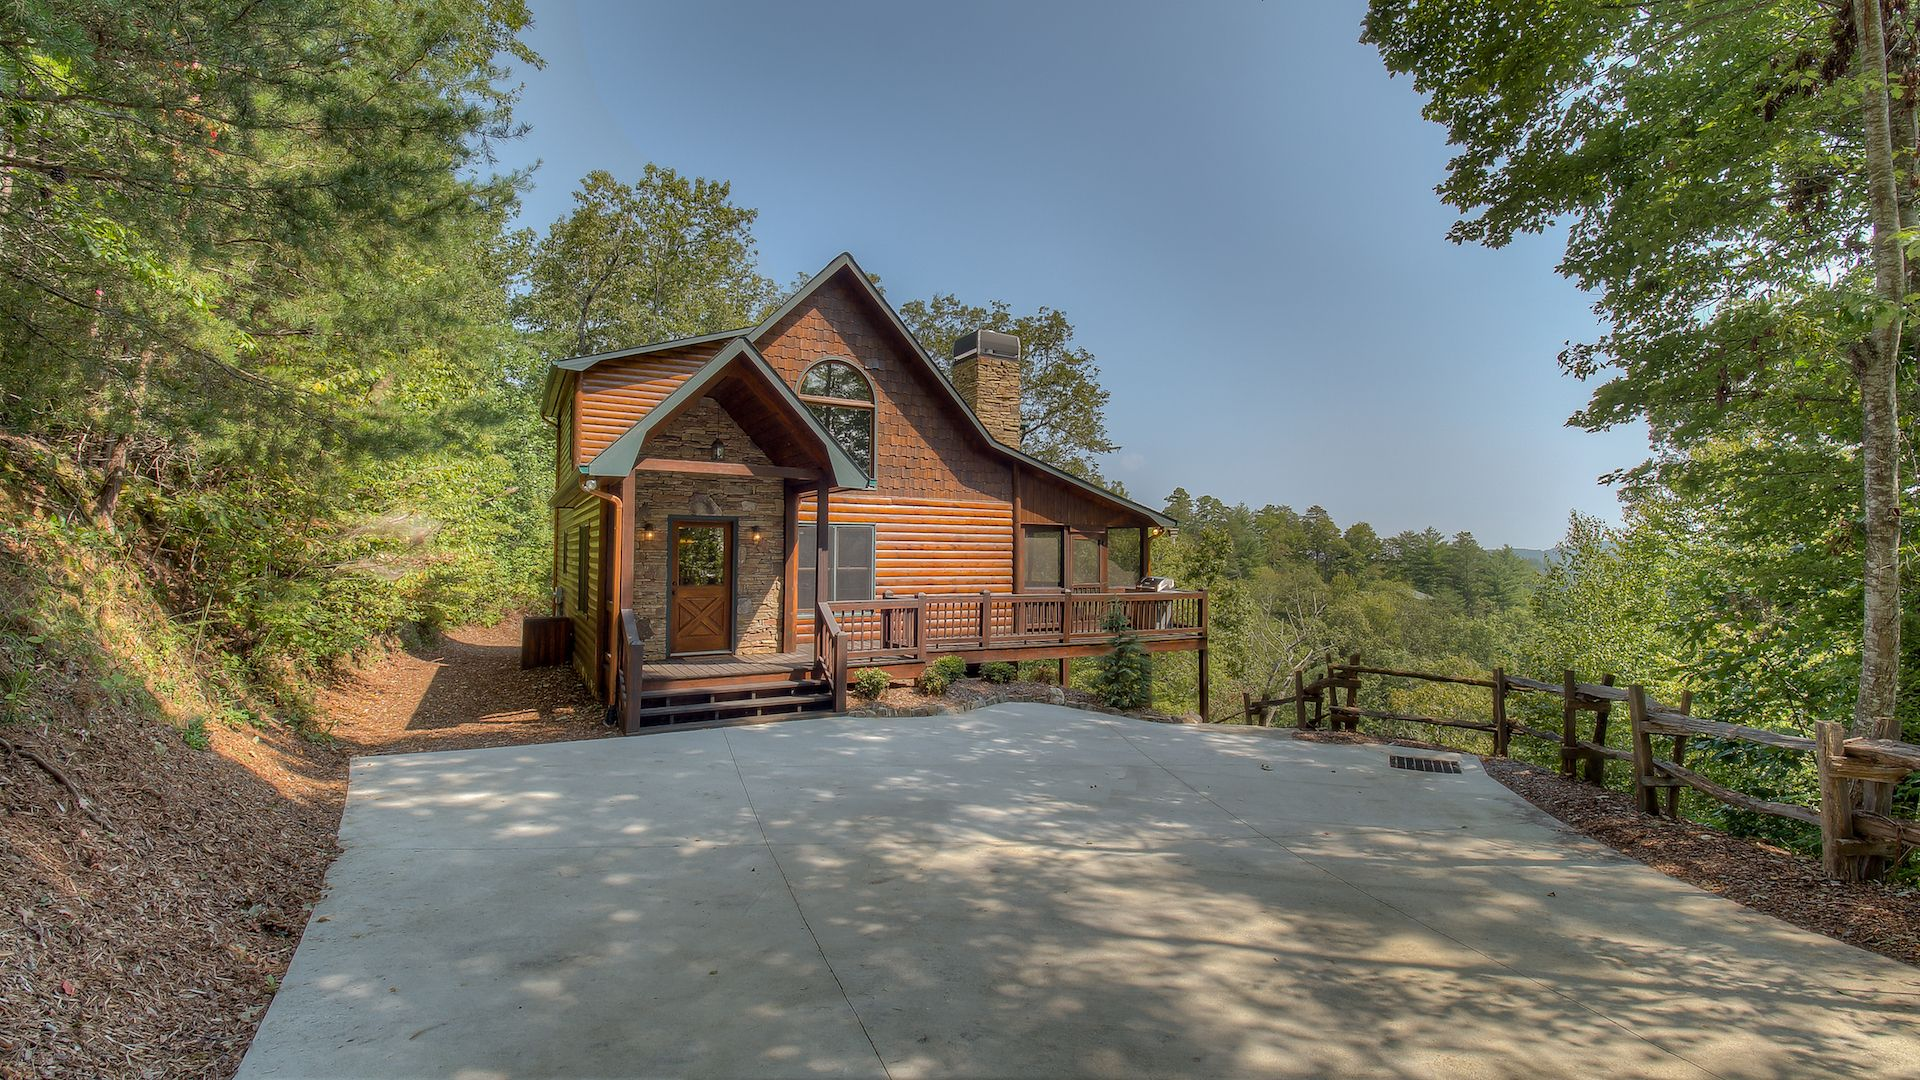 pro in ga amazing ridge rental cabin view georgia blue cabins rentals cabinrentalspets